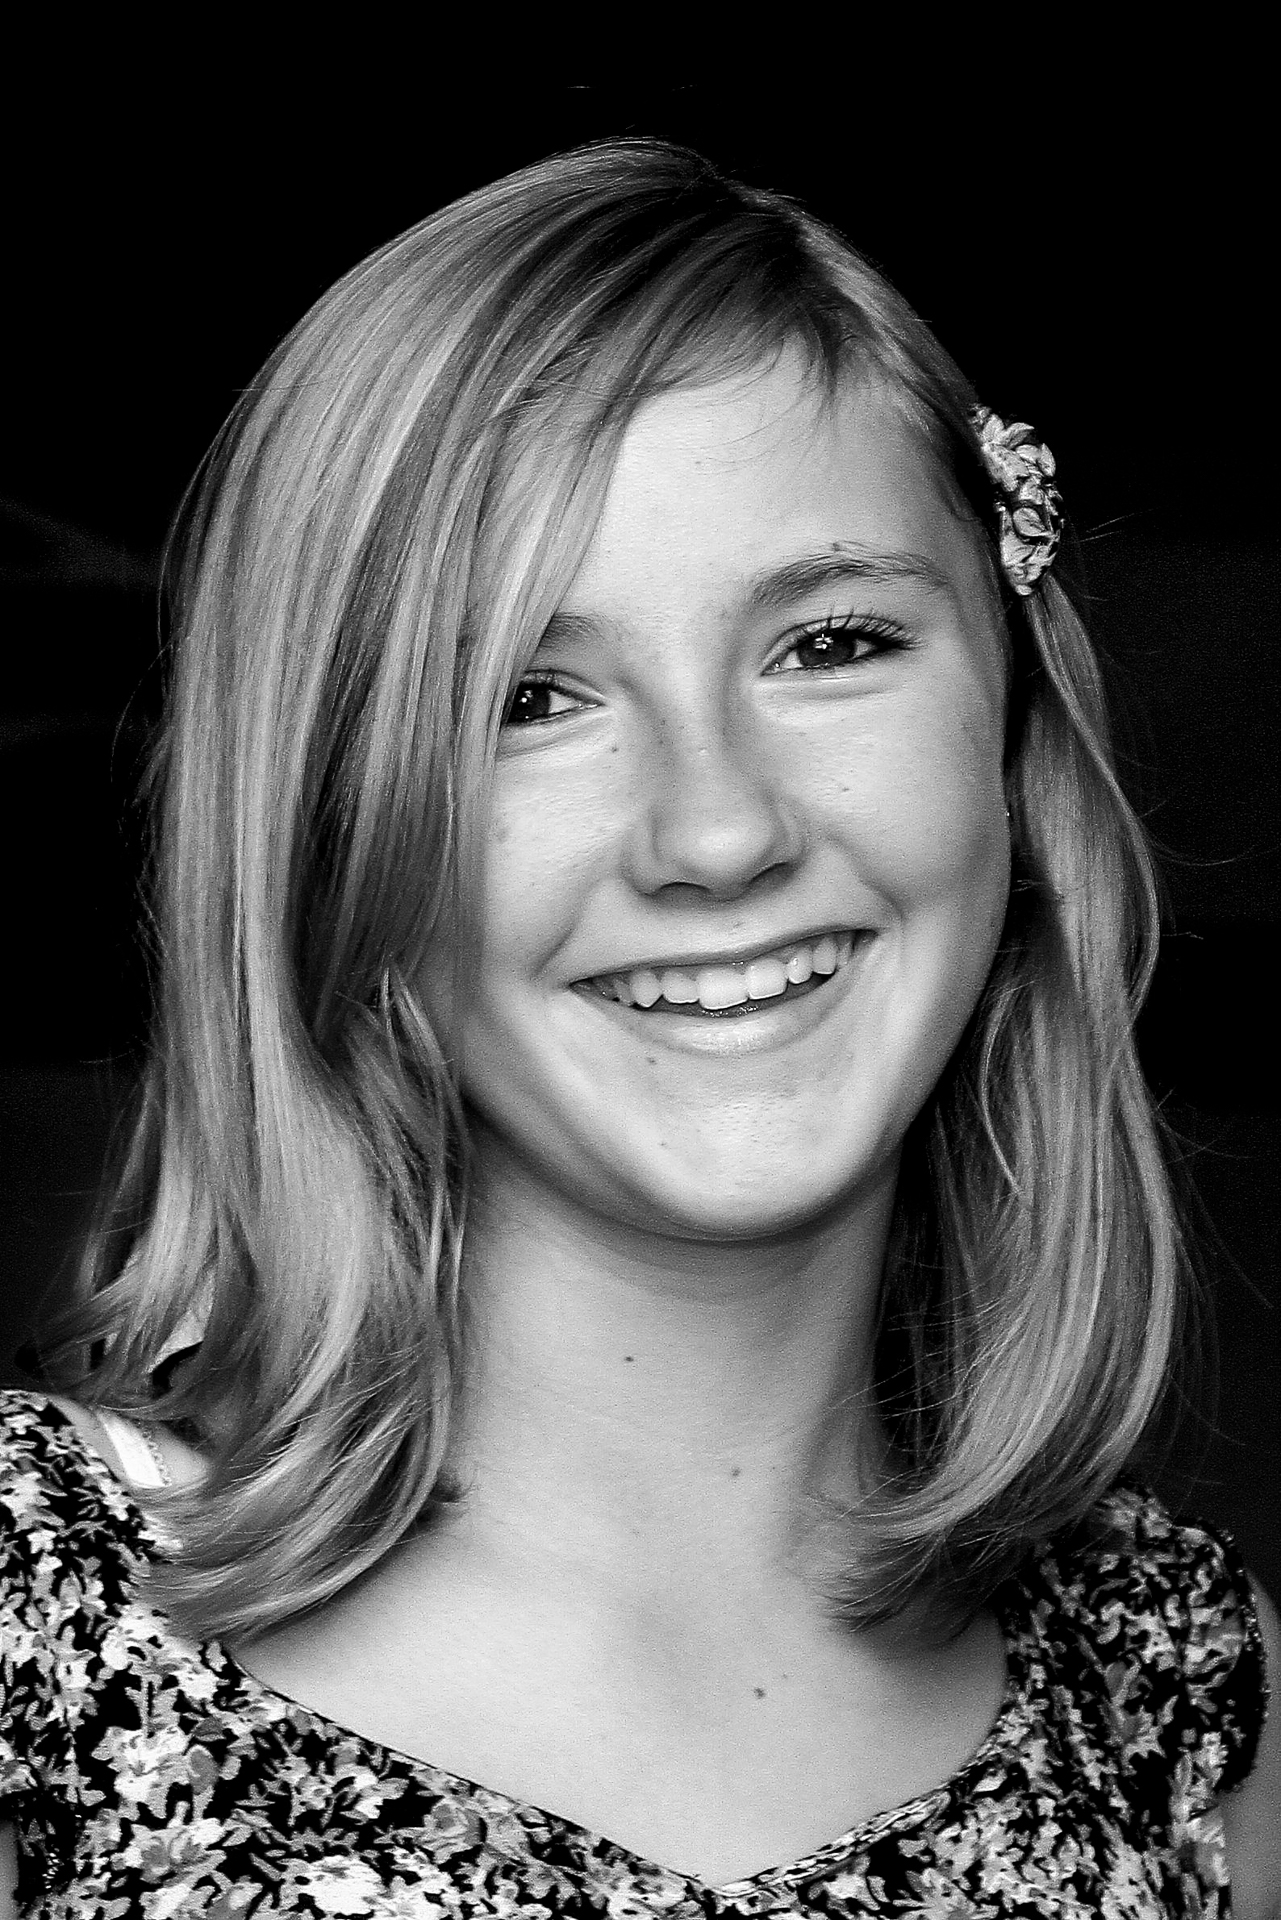 My friends daughter Antonia, seen here smiling in a Black & White head shot. She wears a flowery dress, her long hair is down to her shoulders, and she has a flower in her hair on the LHS.